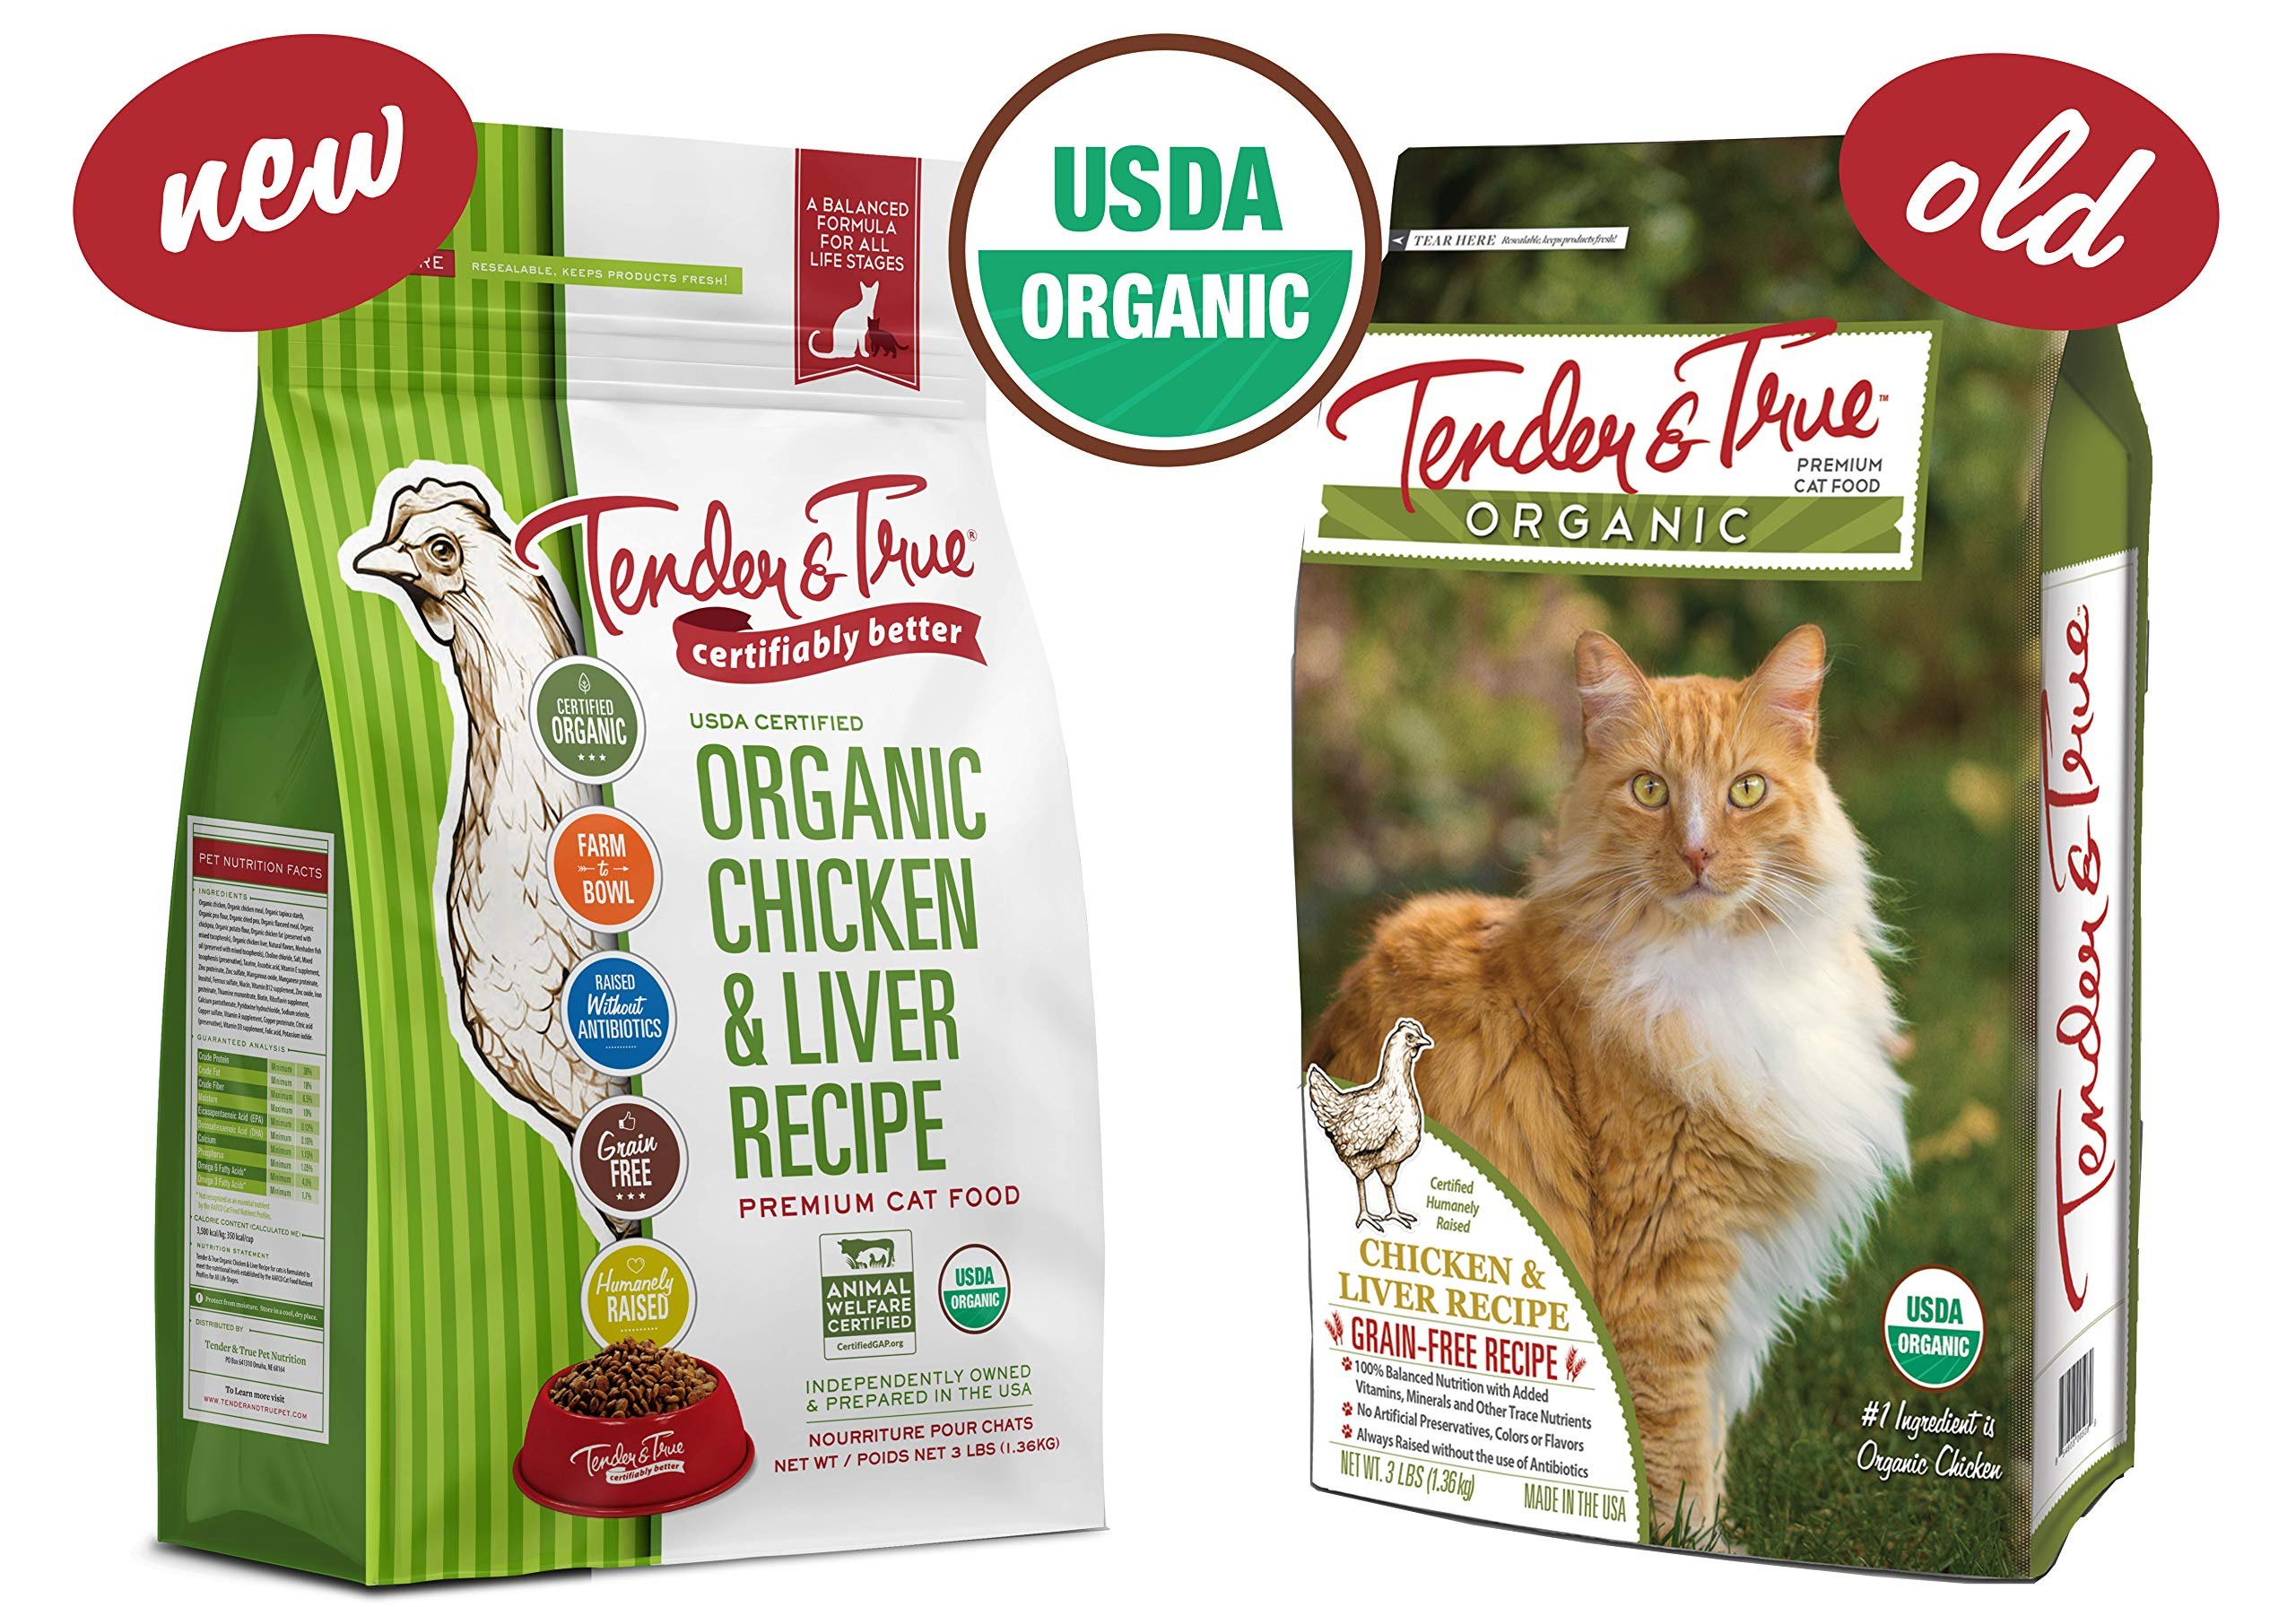 Tender & True Organic Chicken & Liver Recipe Cat Food, 3 lb by Tender & True Pet Nutrition